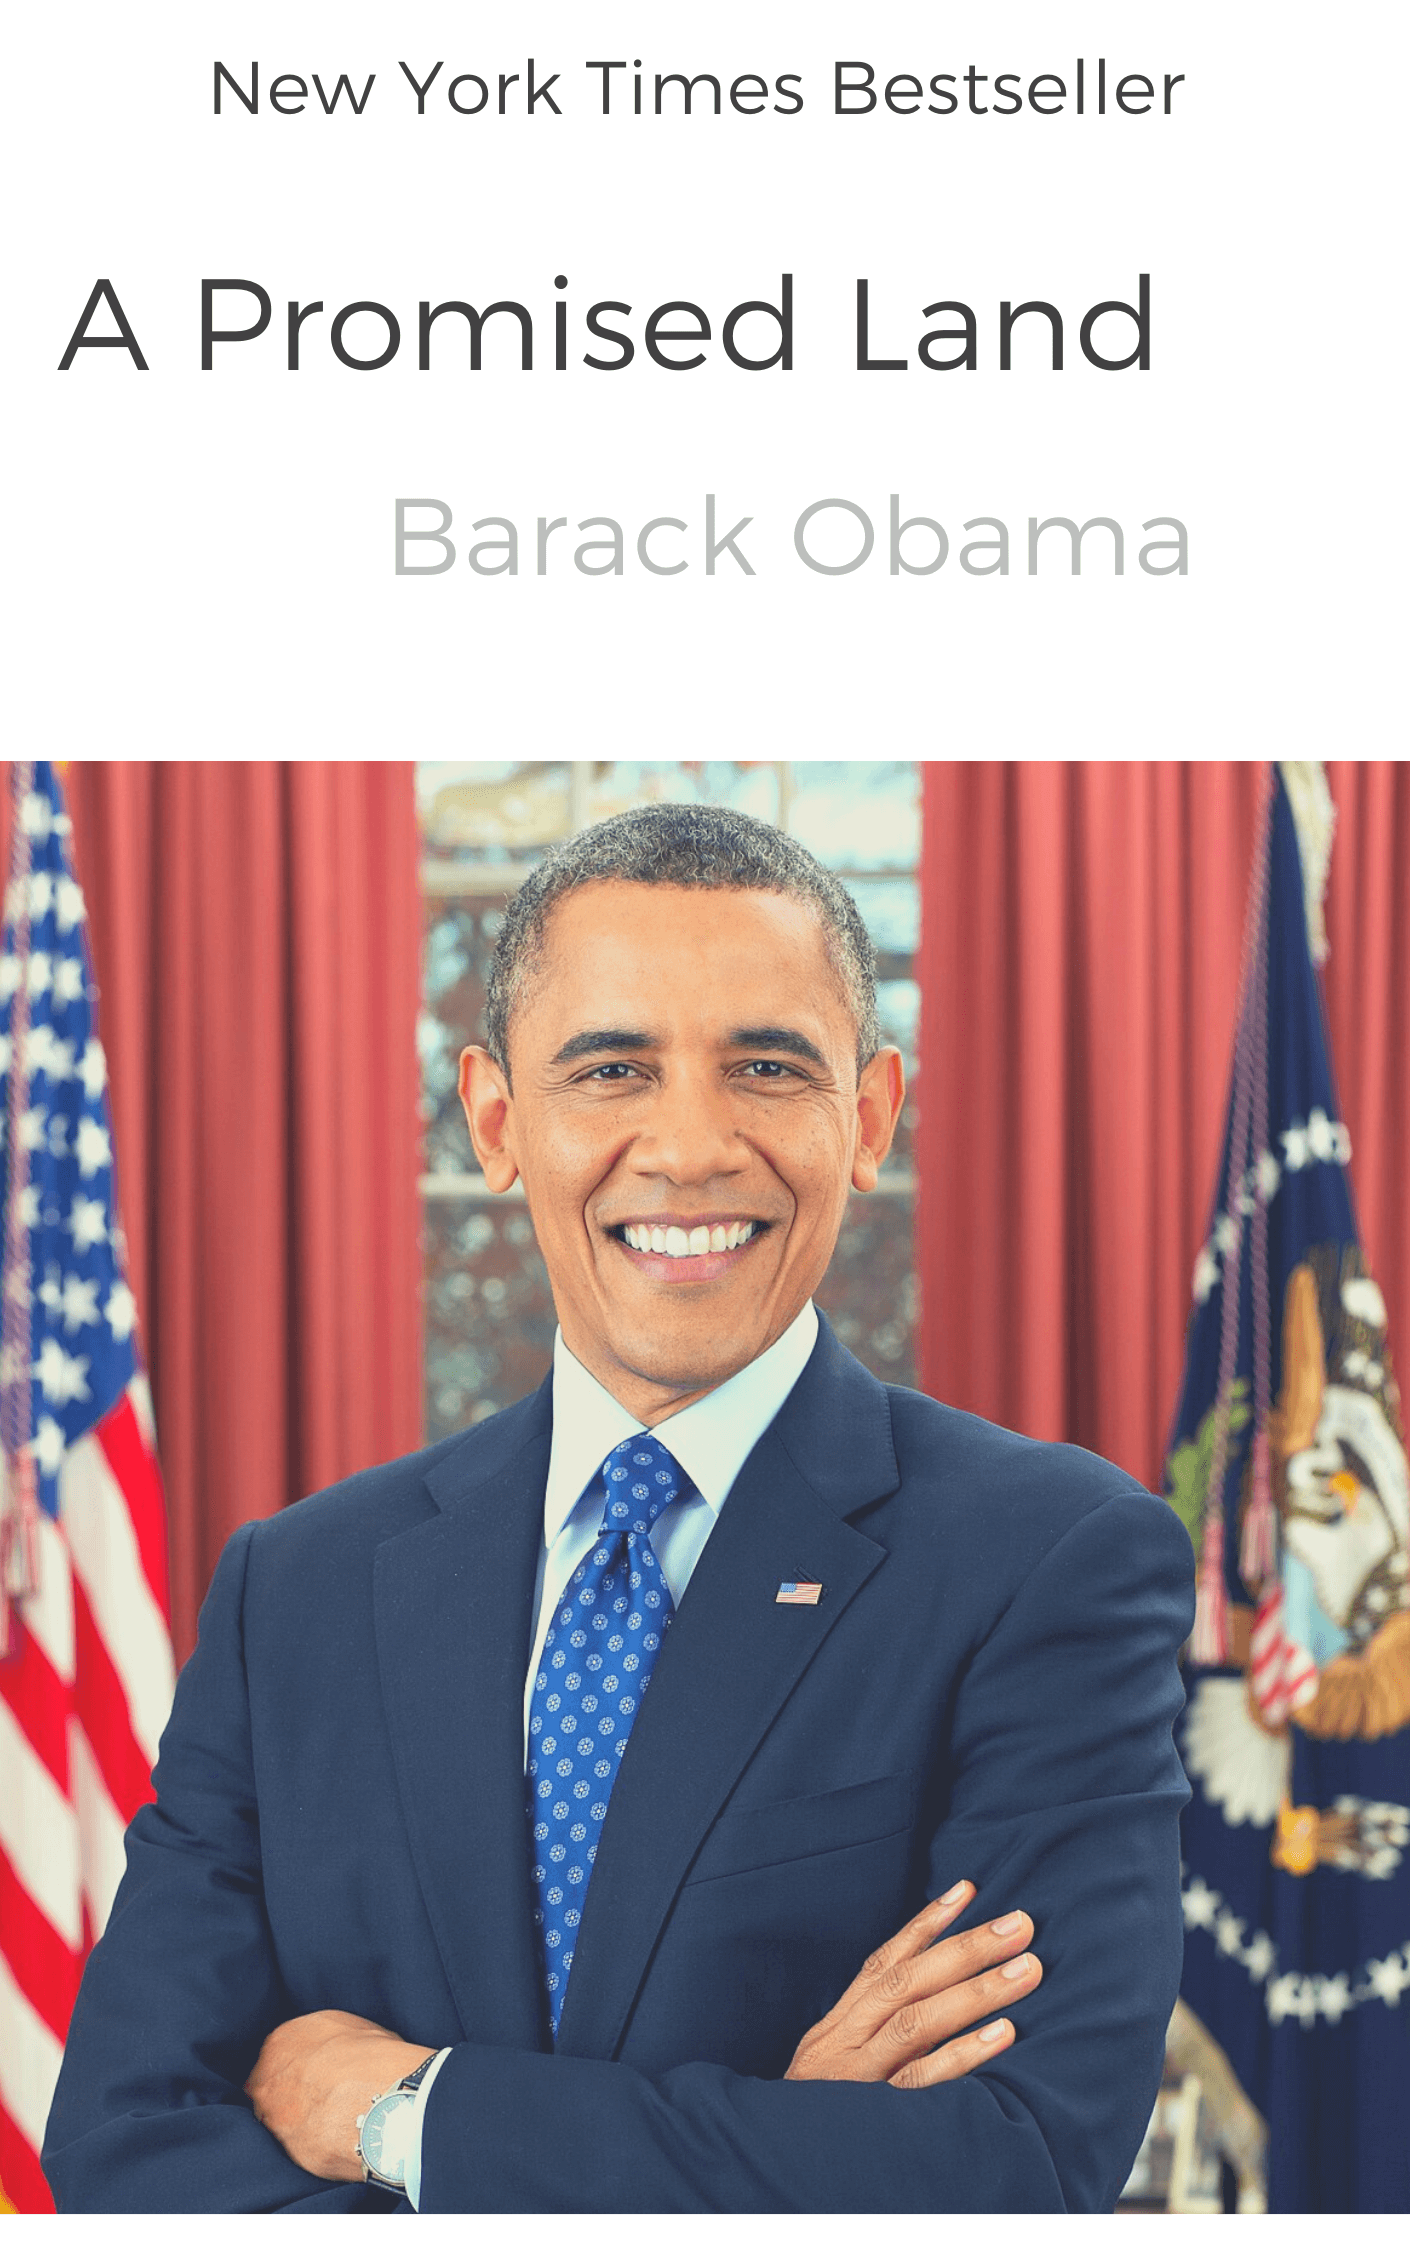 book summary - A Promised Land by Barack Obama